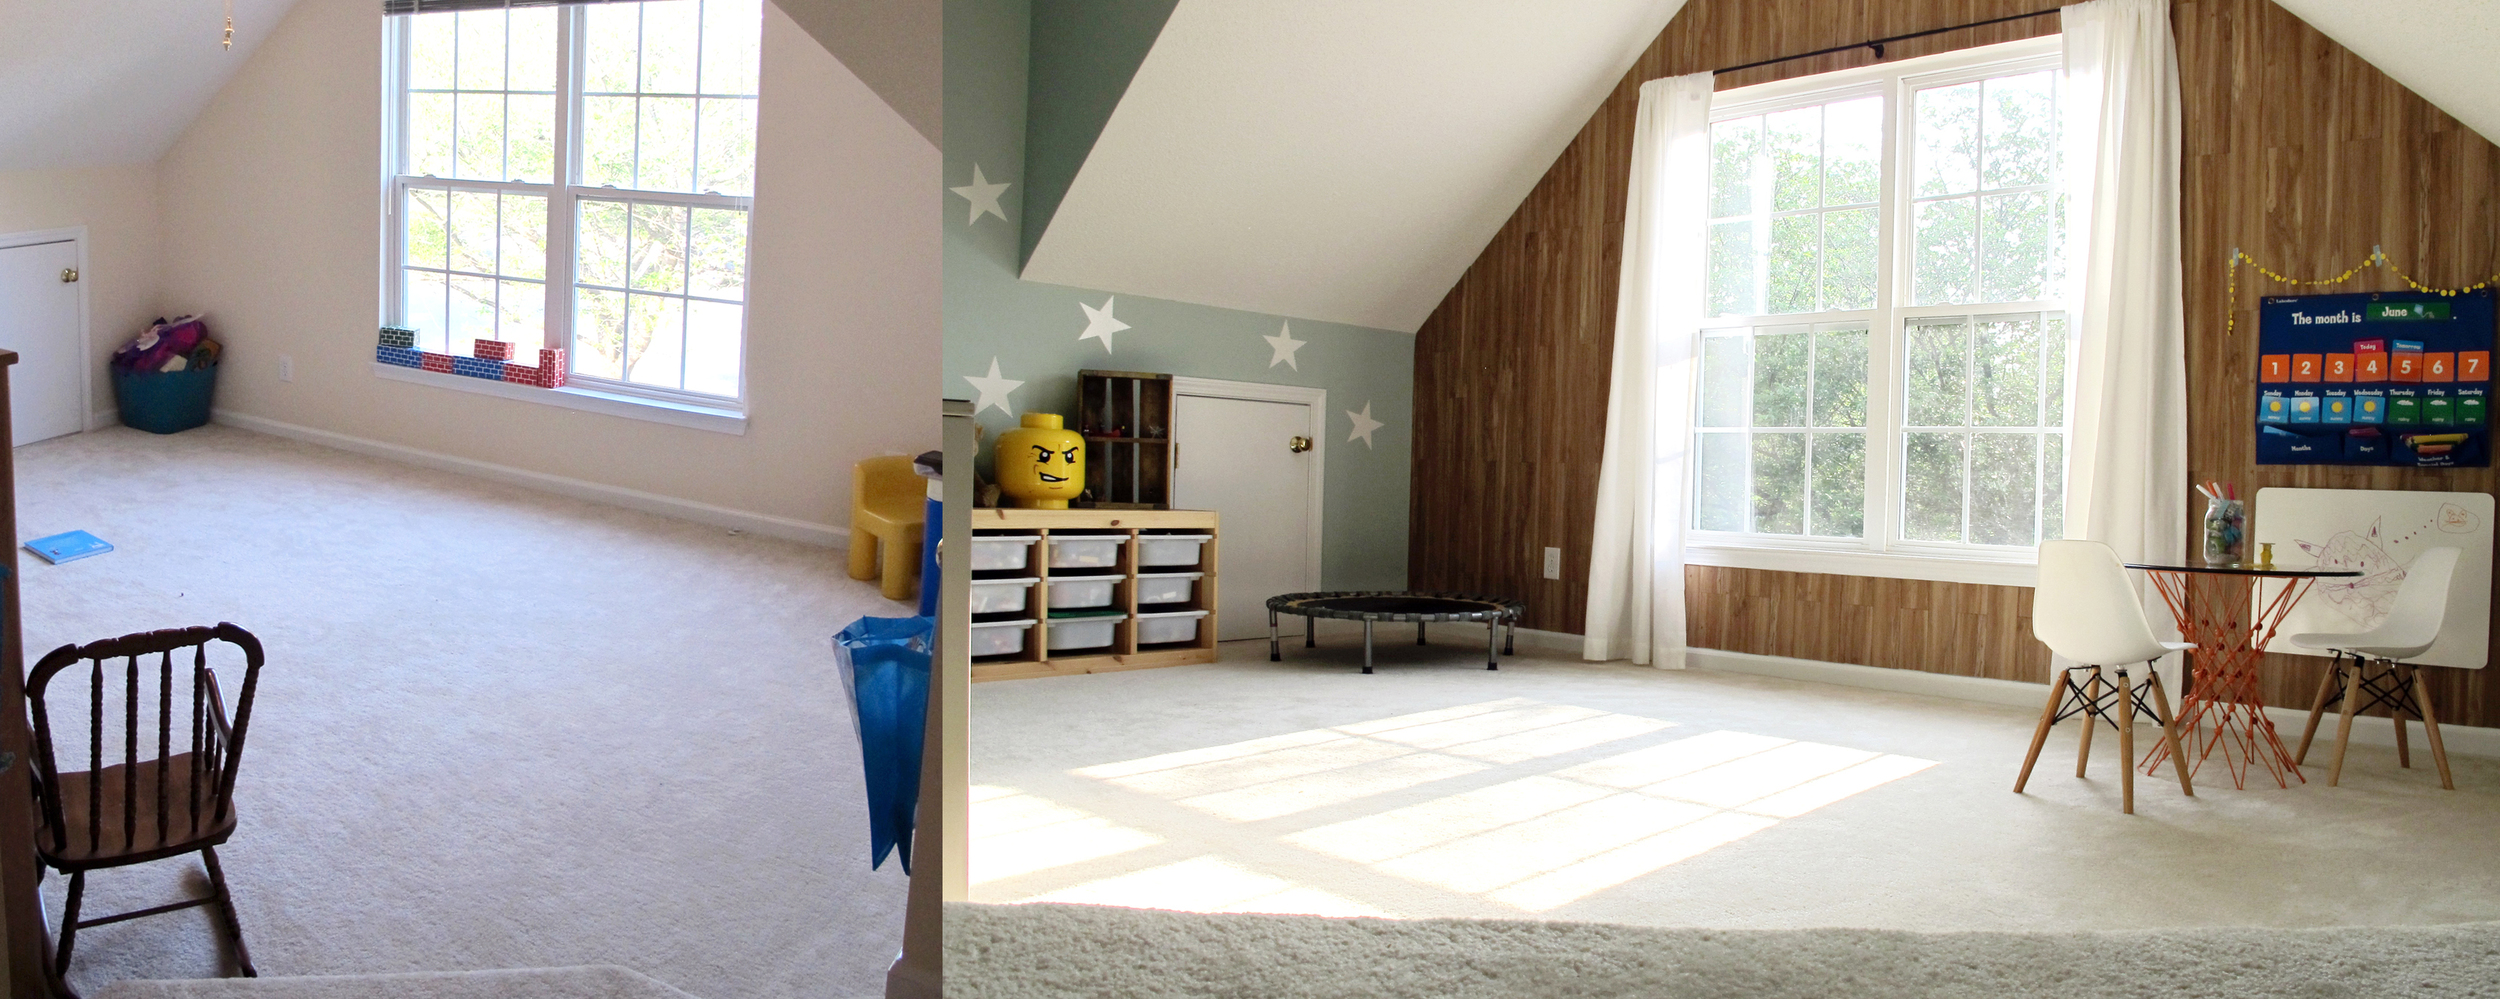 before + after playroom makeover